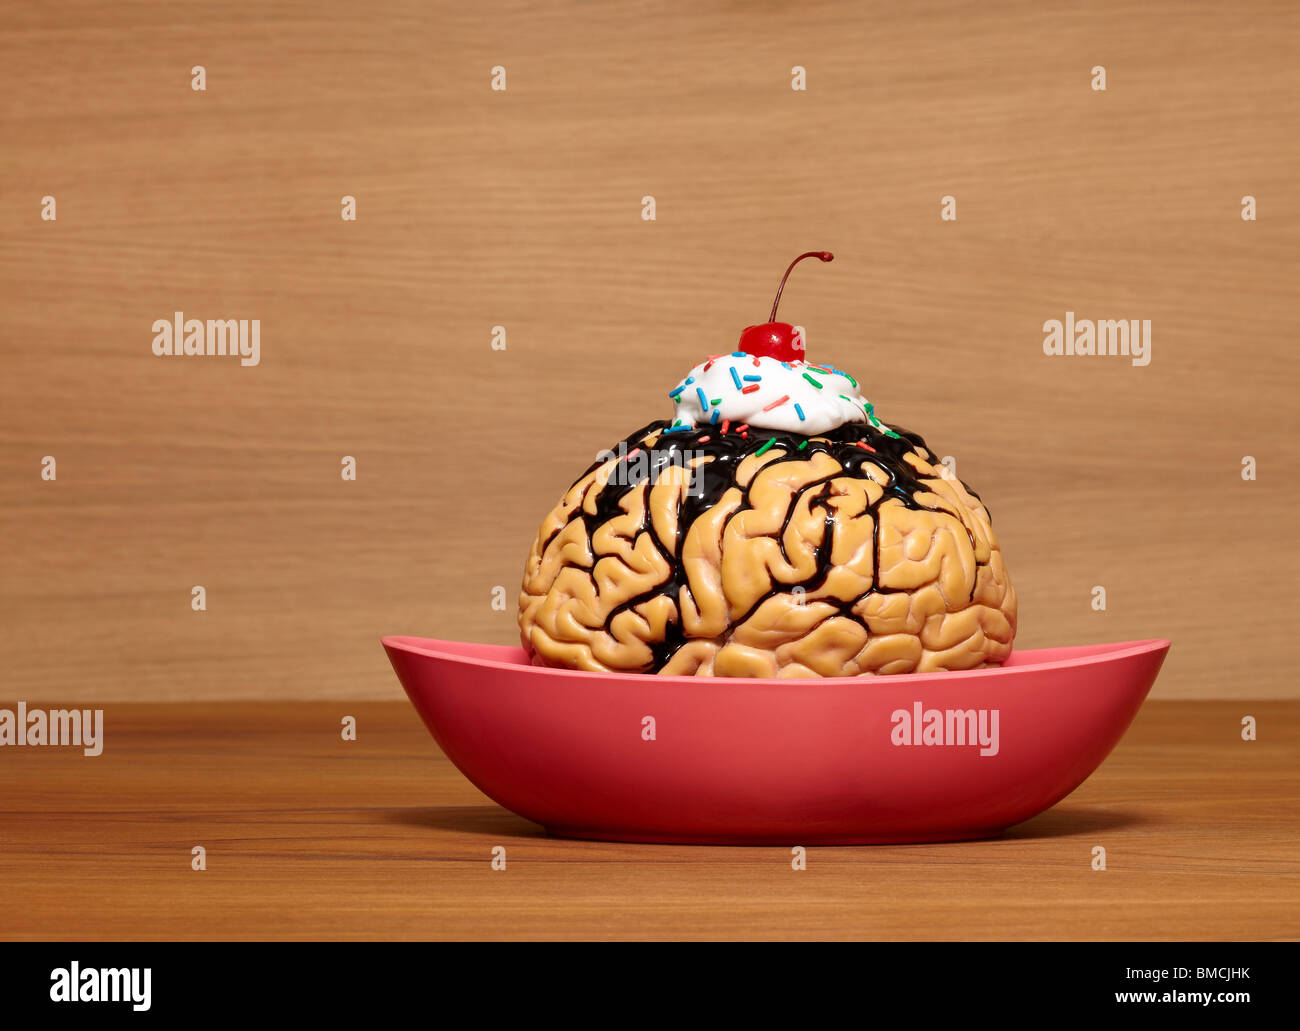 Brain Sundae with Cherry on Top - Stock Image